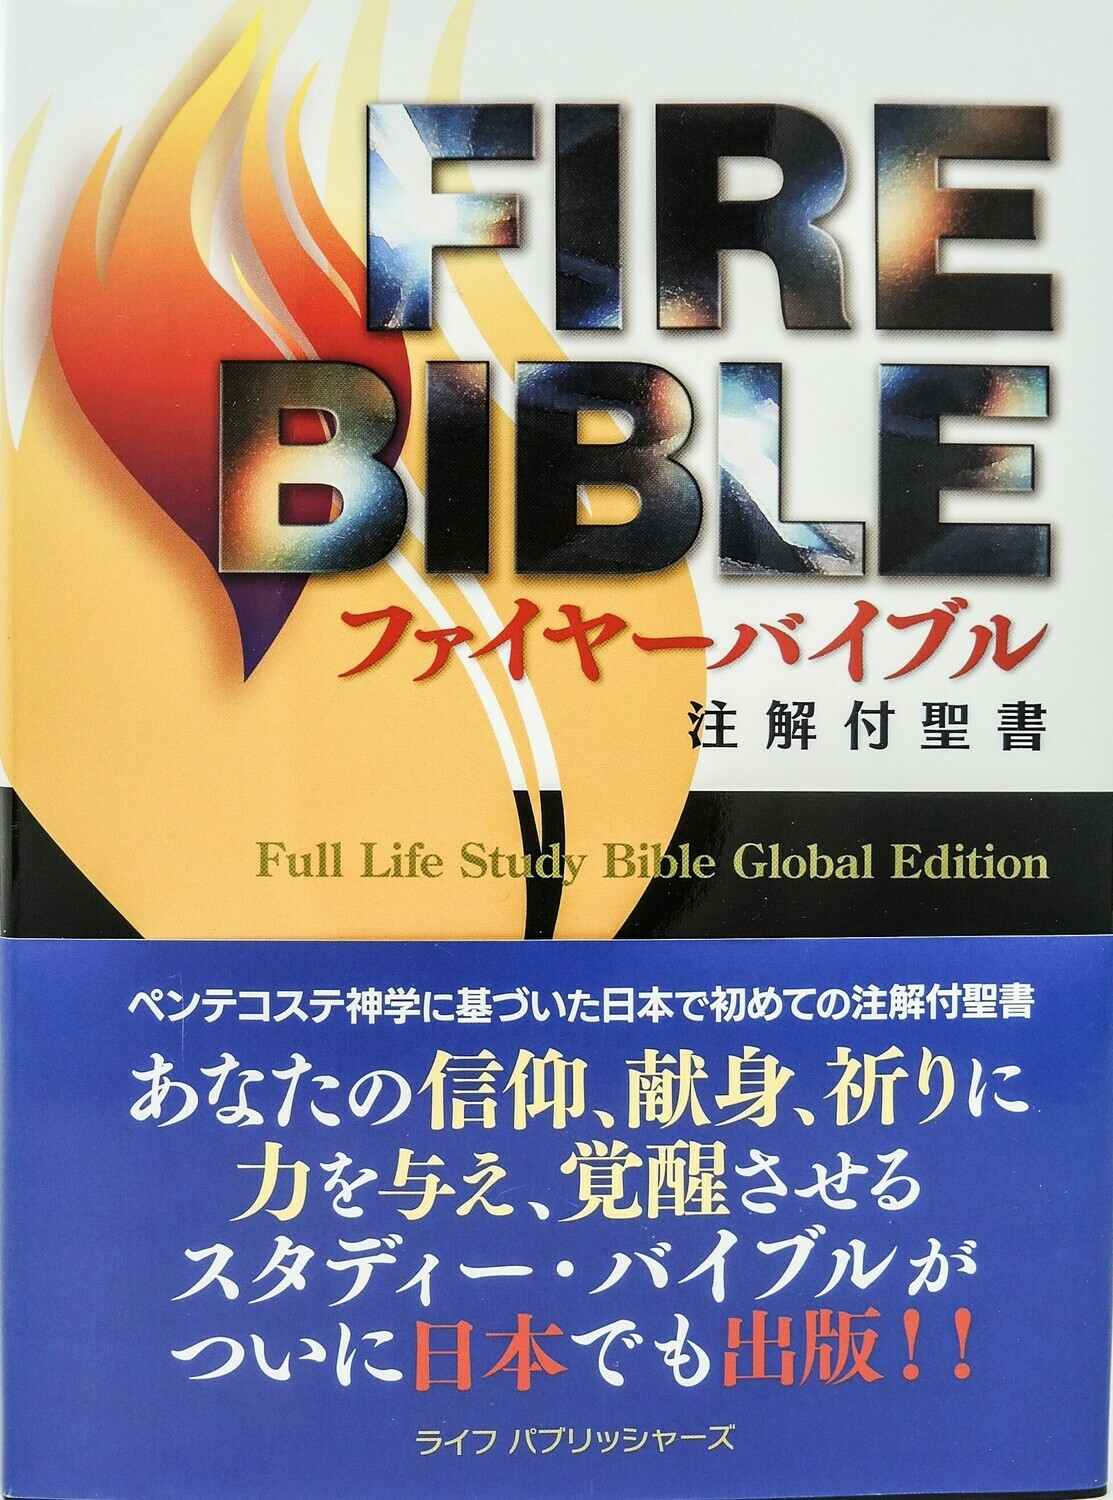 Japanese (日本語) Hardcover with Dust Cover